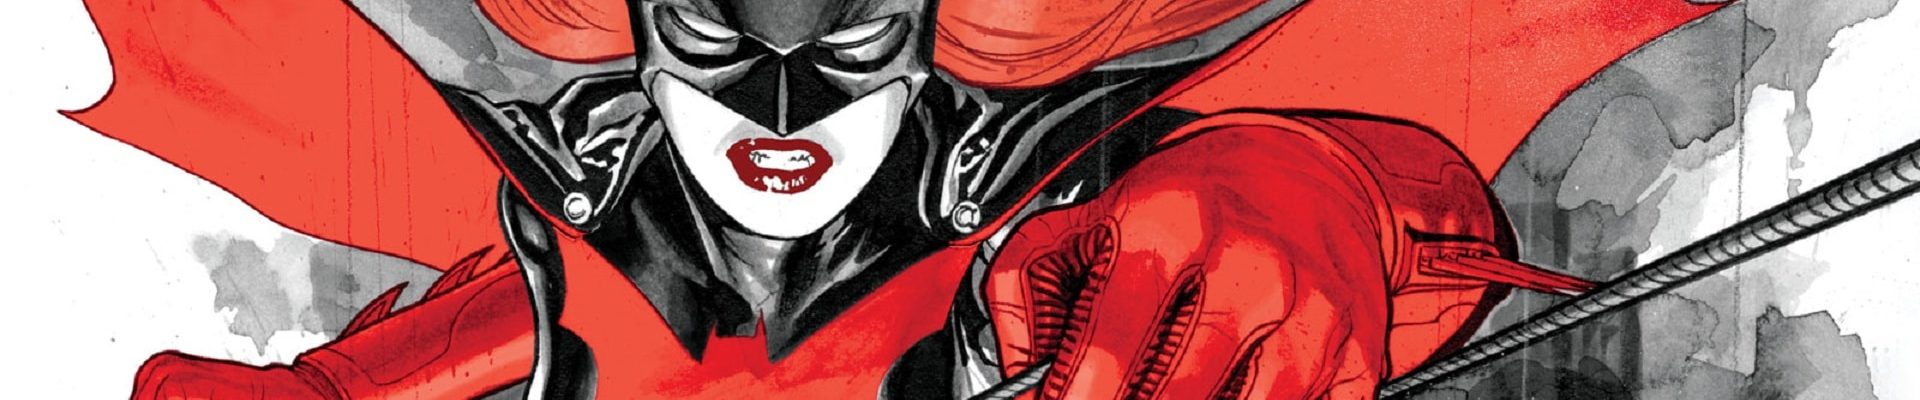 on sale today batwoman